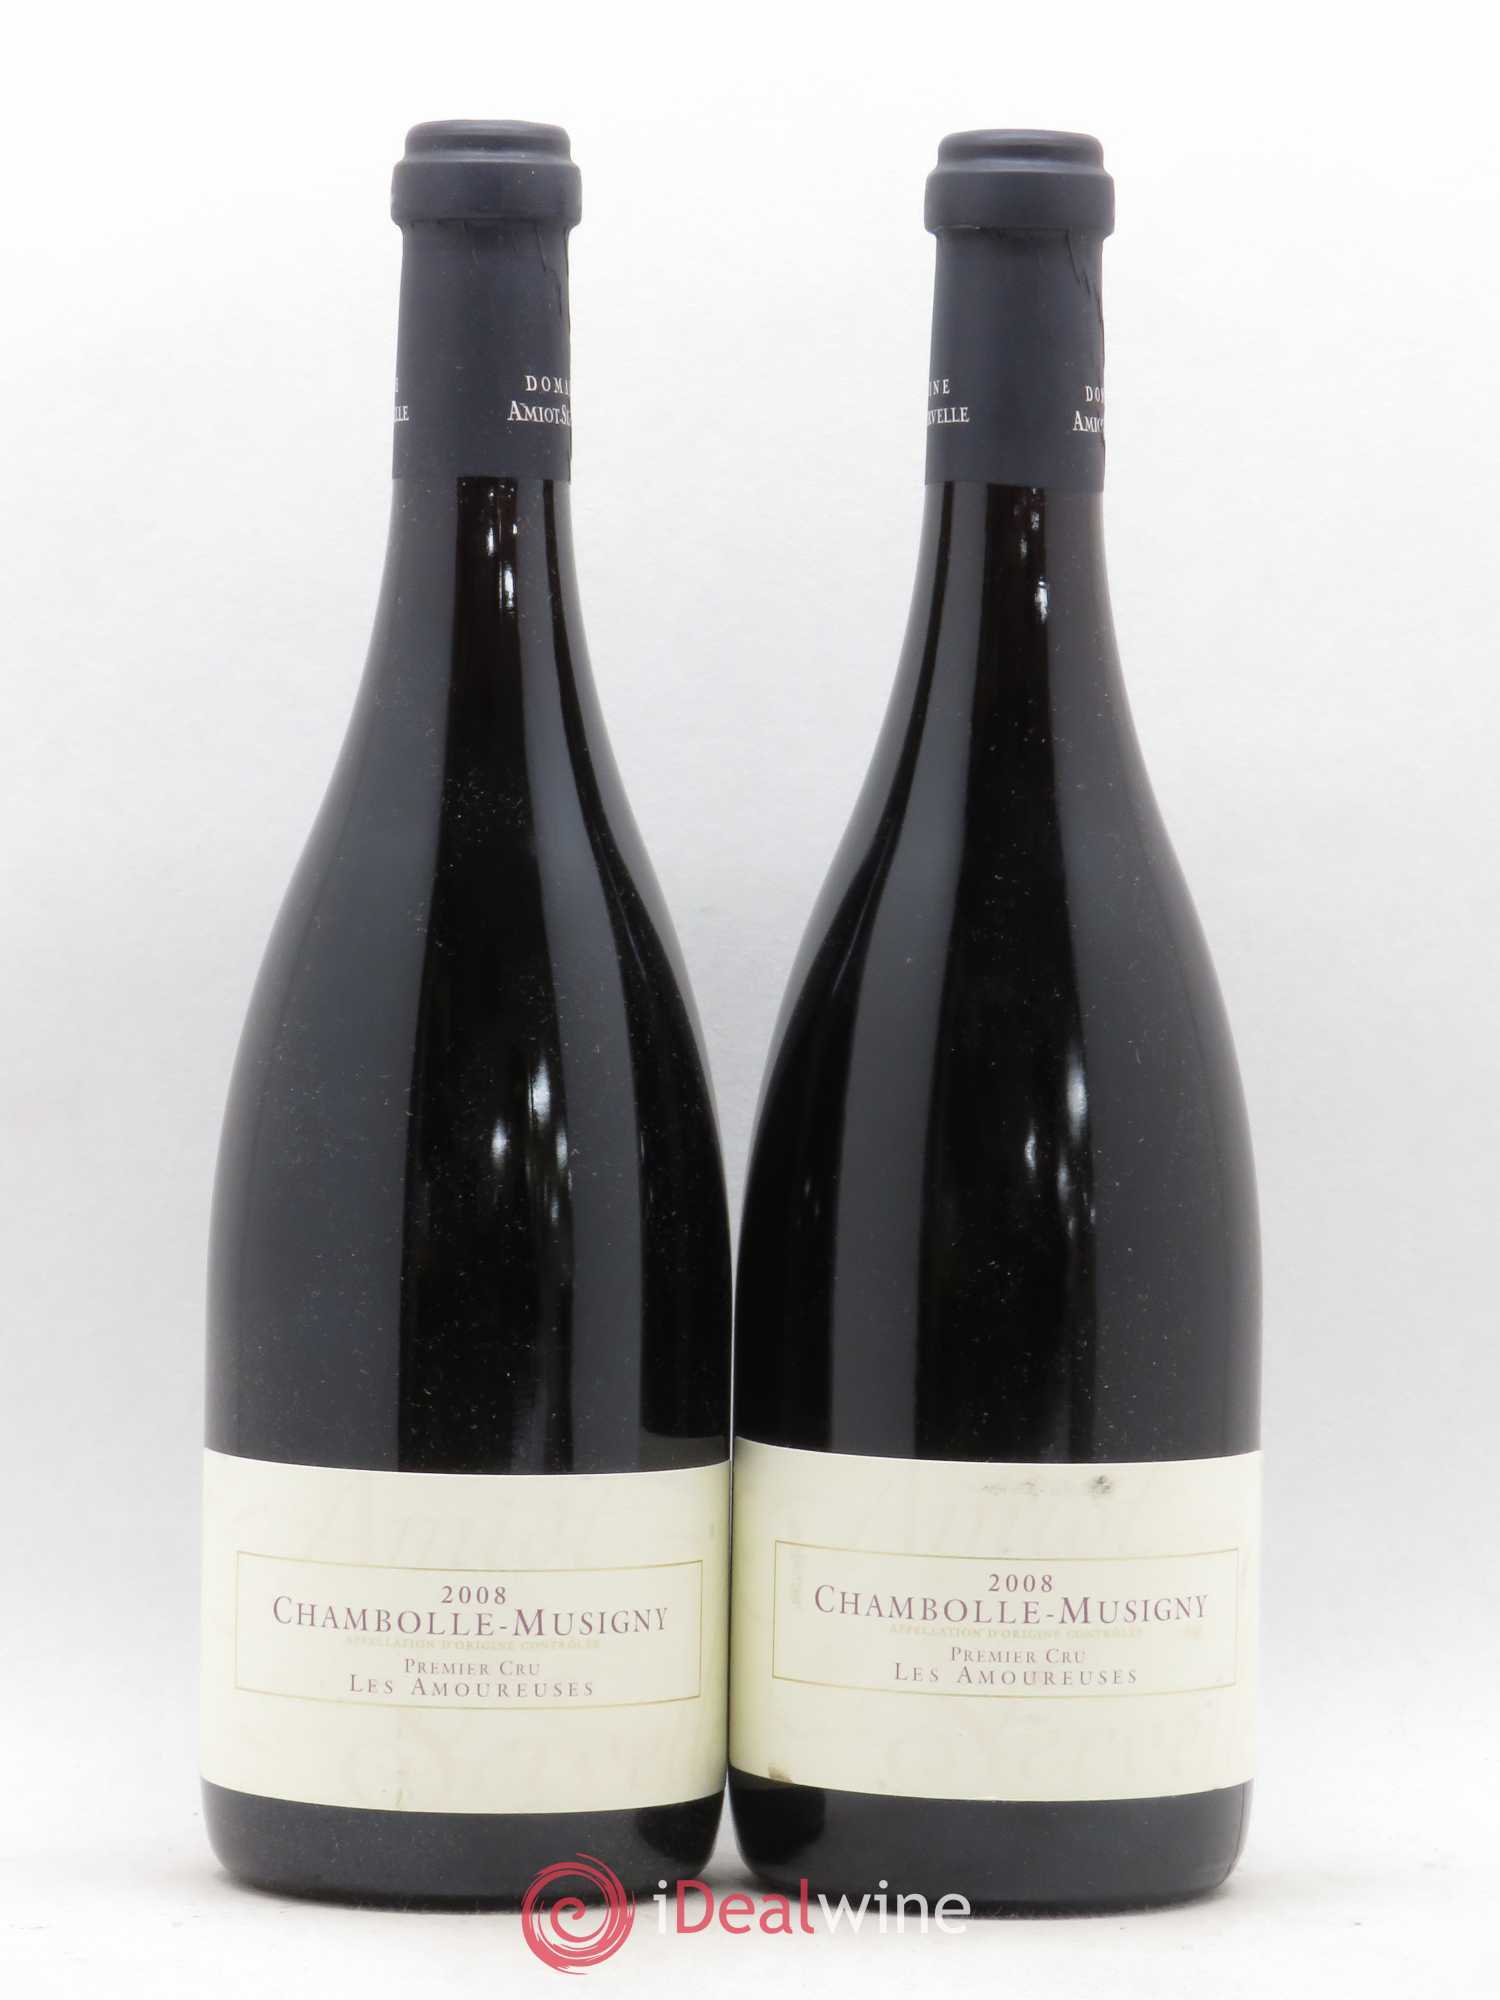 Chambolle-Musigny 1er Cru Les Amoureuses Amiot-Servelle  2008 - Lot of 2 Bottles